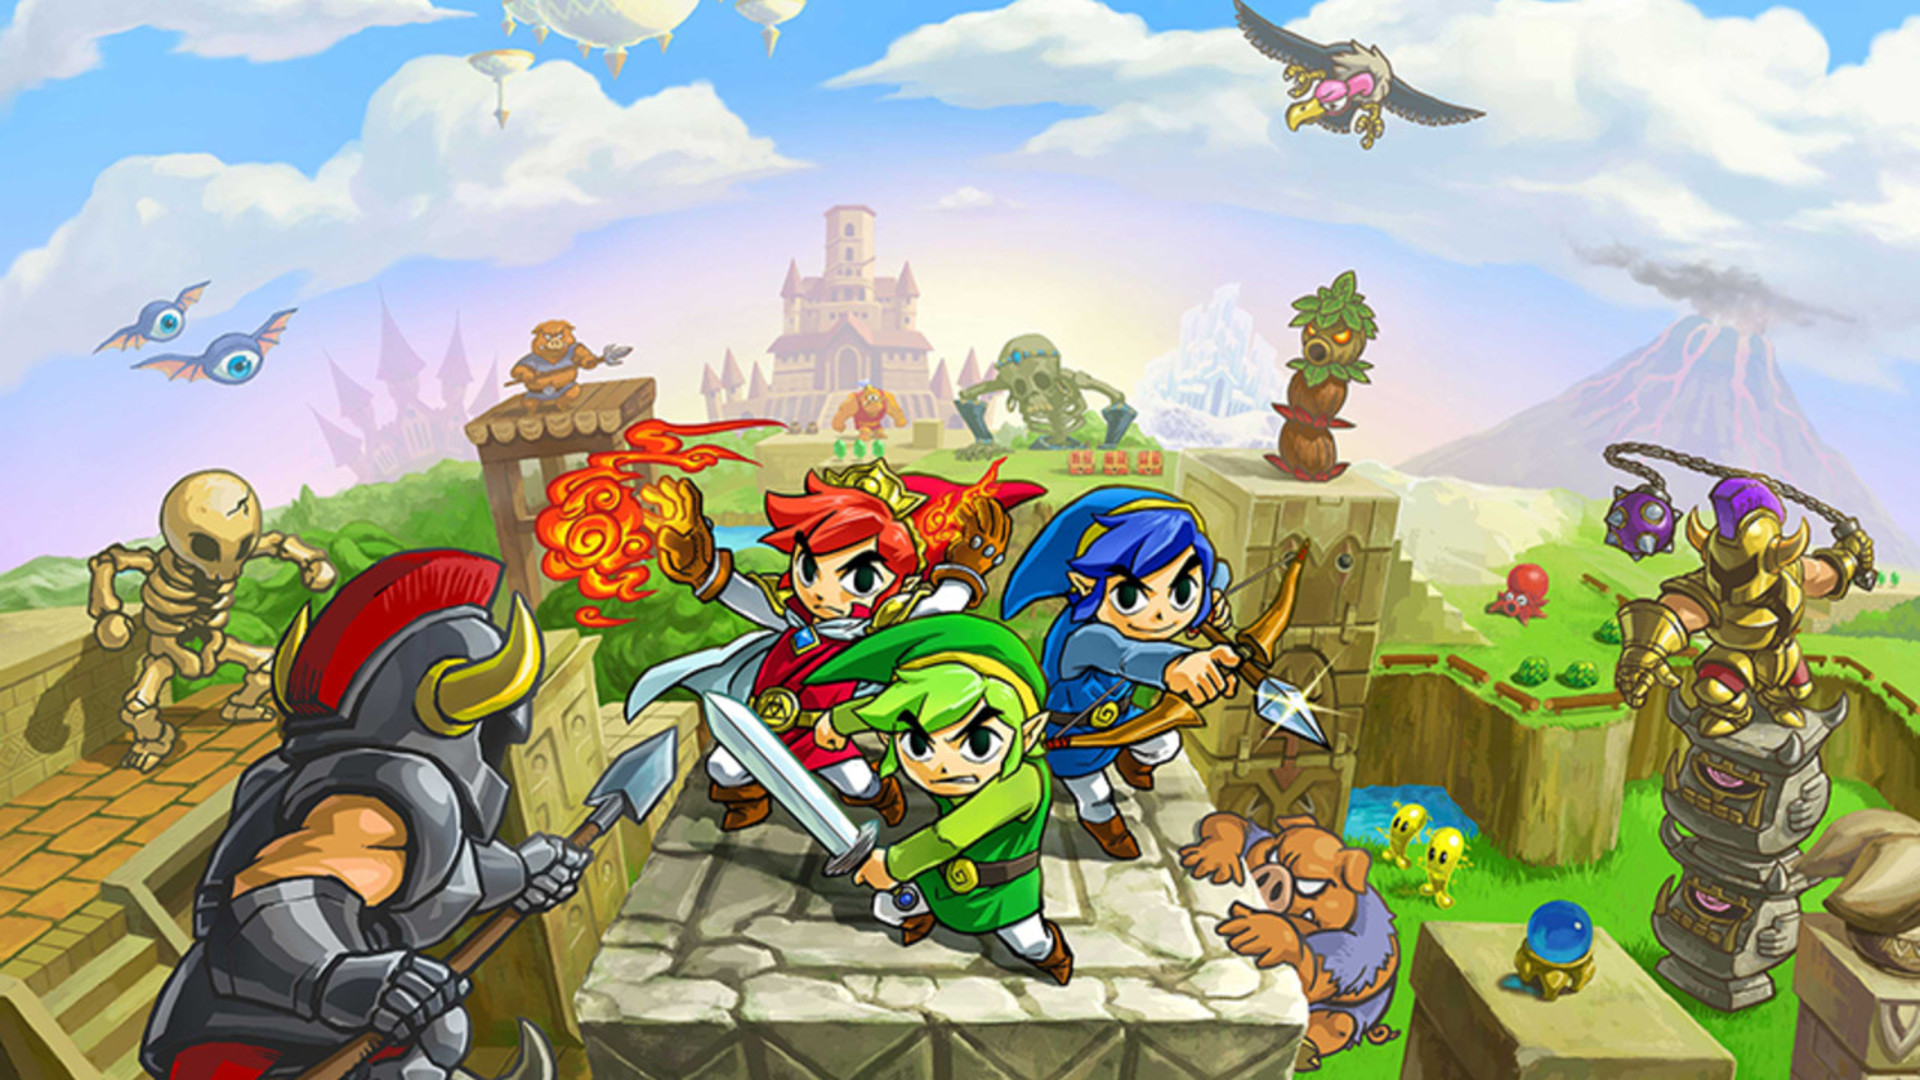 Hytopian Fables: Solving Tri Force Heroes Questionable Canon Status by Suggesting the Whole Thing was an In-Universe Fairytale